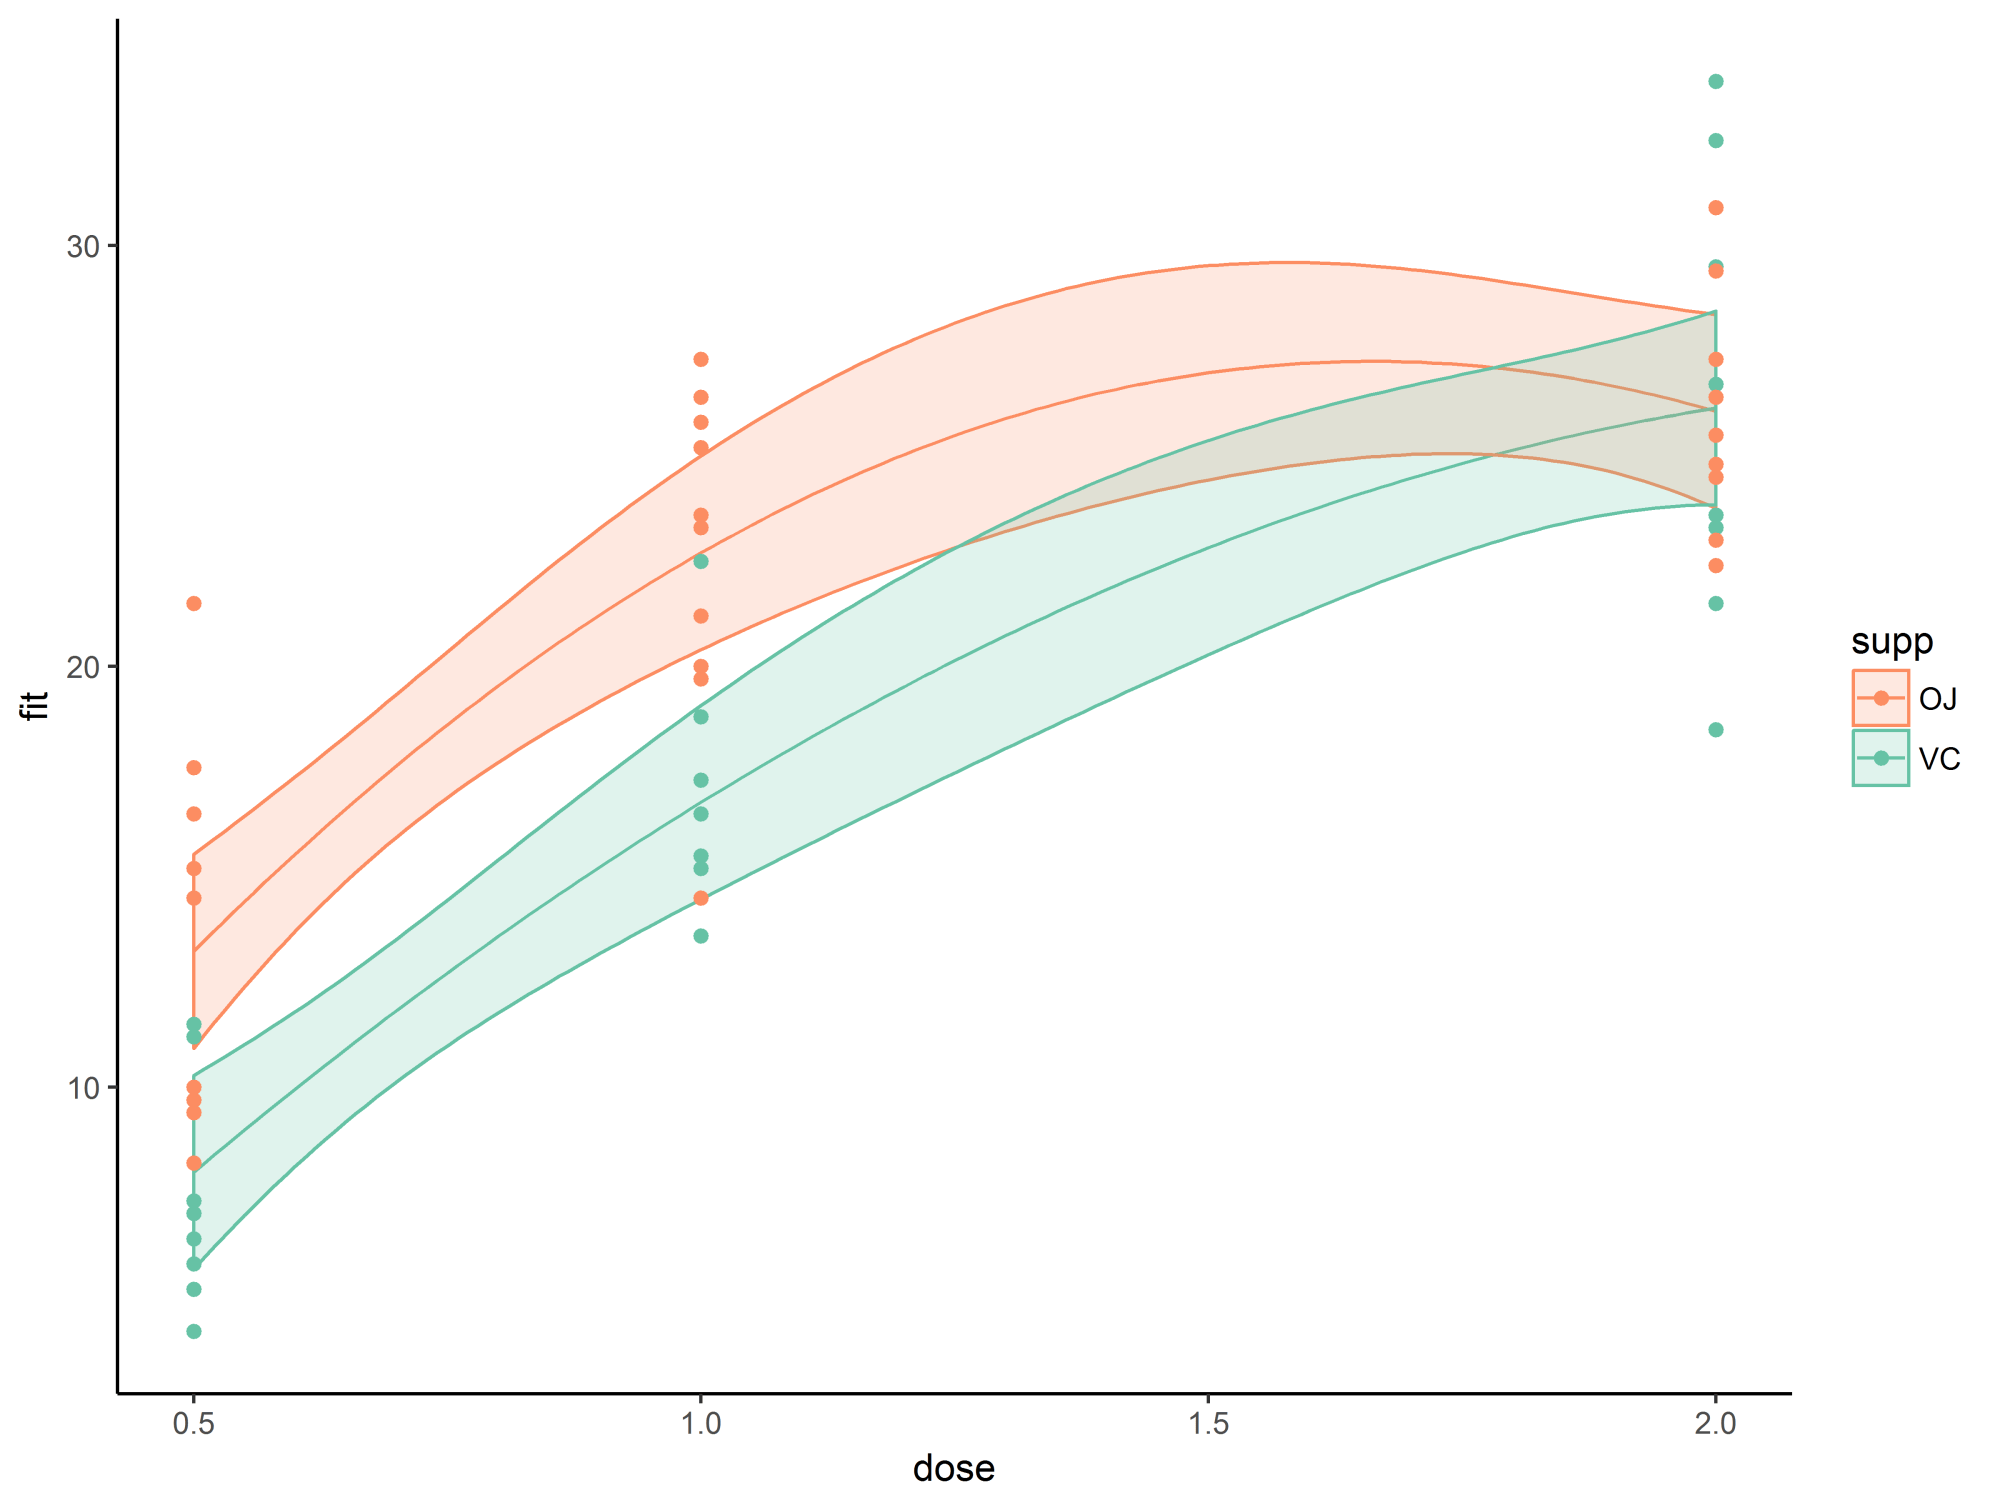 hight resolution of fig 2 13b model predicted values theme classic new colors